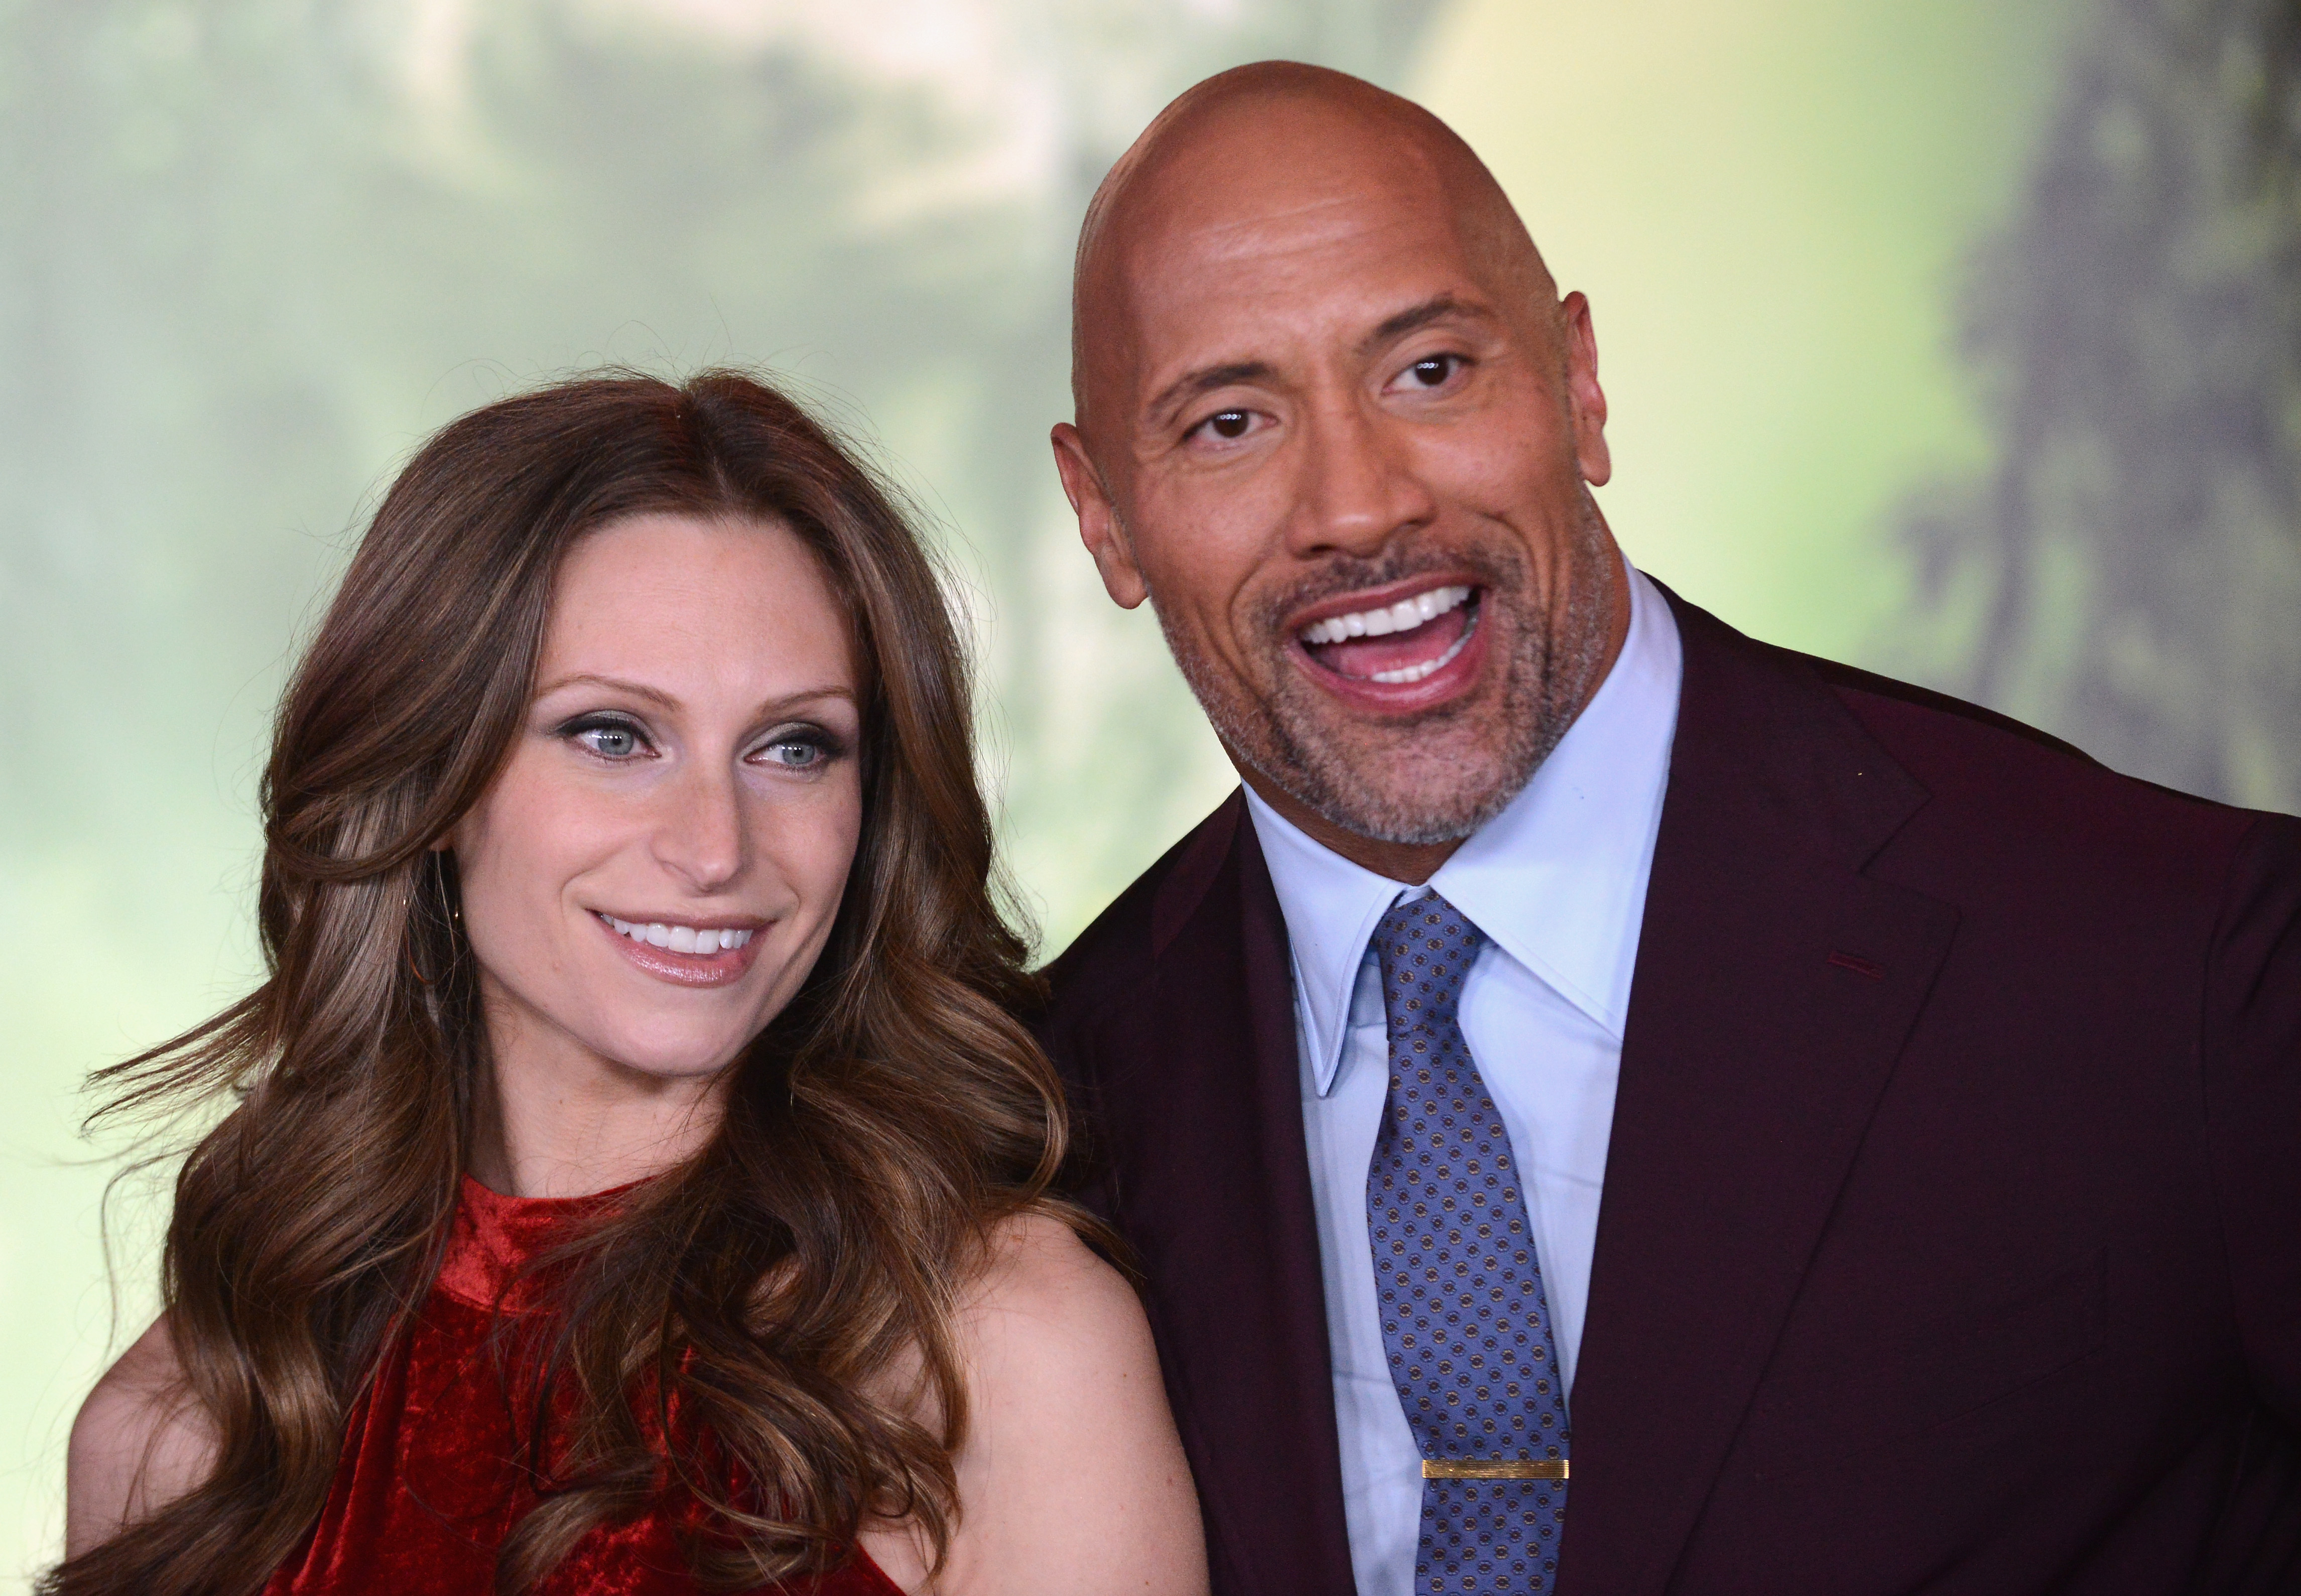 The Rock married - Celeb love news for mid-August 2019 ...